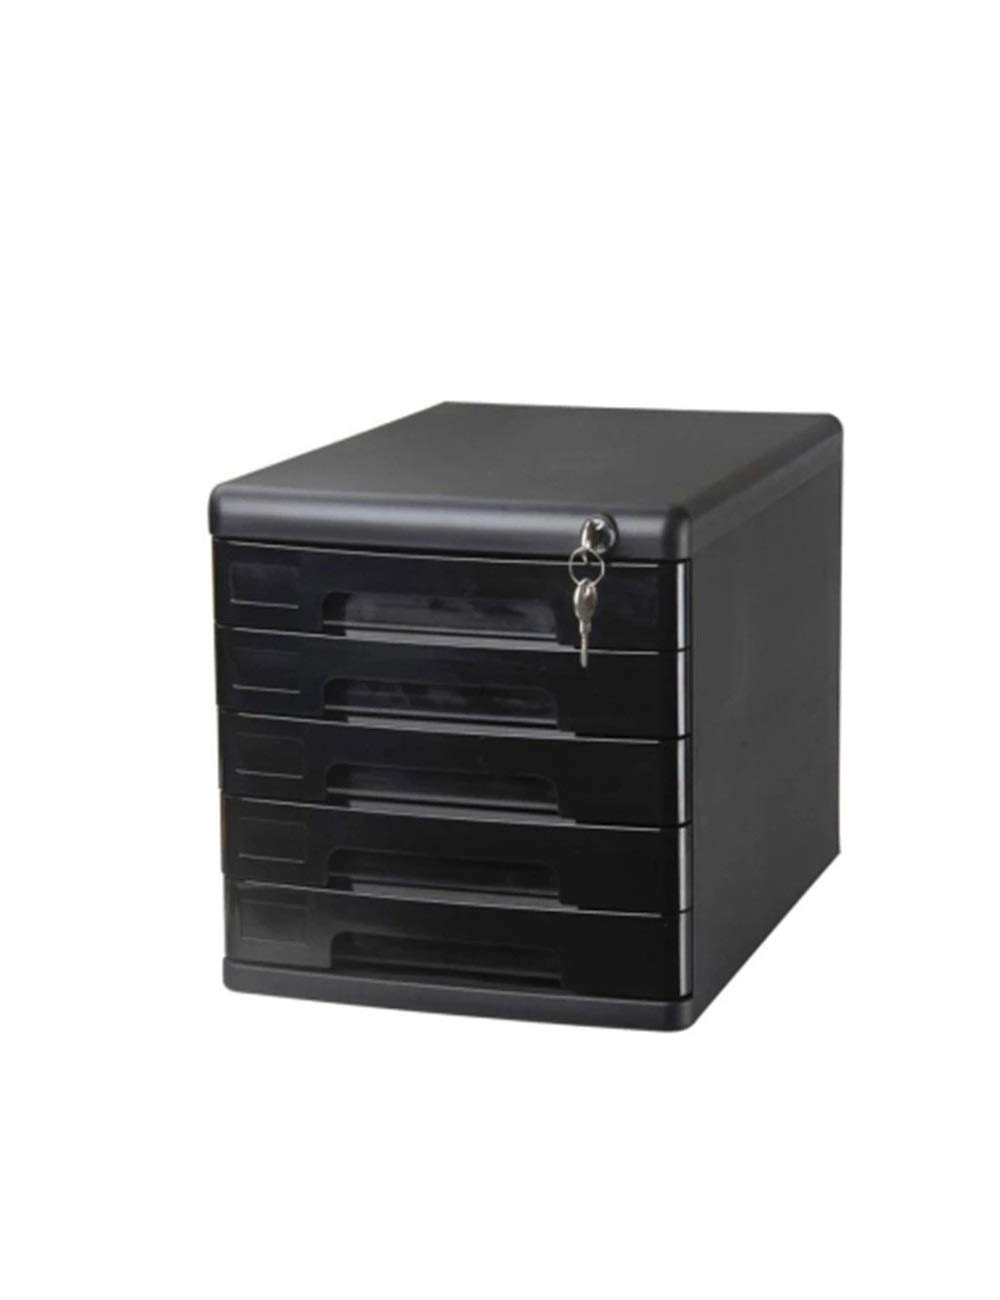 File Cabinet 5 Drawers Plastic Desktop Security Cabinet File Storage Cabinet Storage Box Desktop Office Locker Filing cabinets (Color : B)